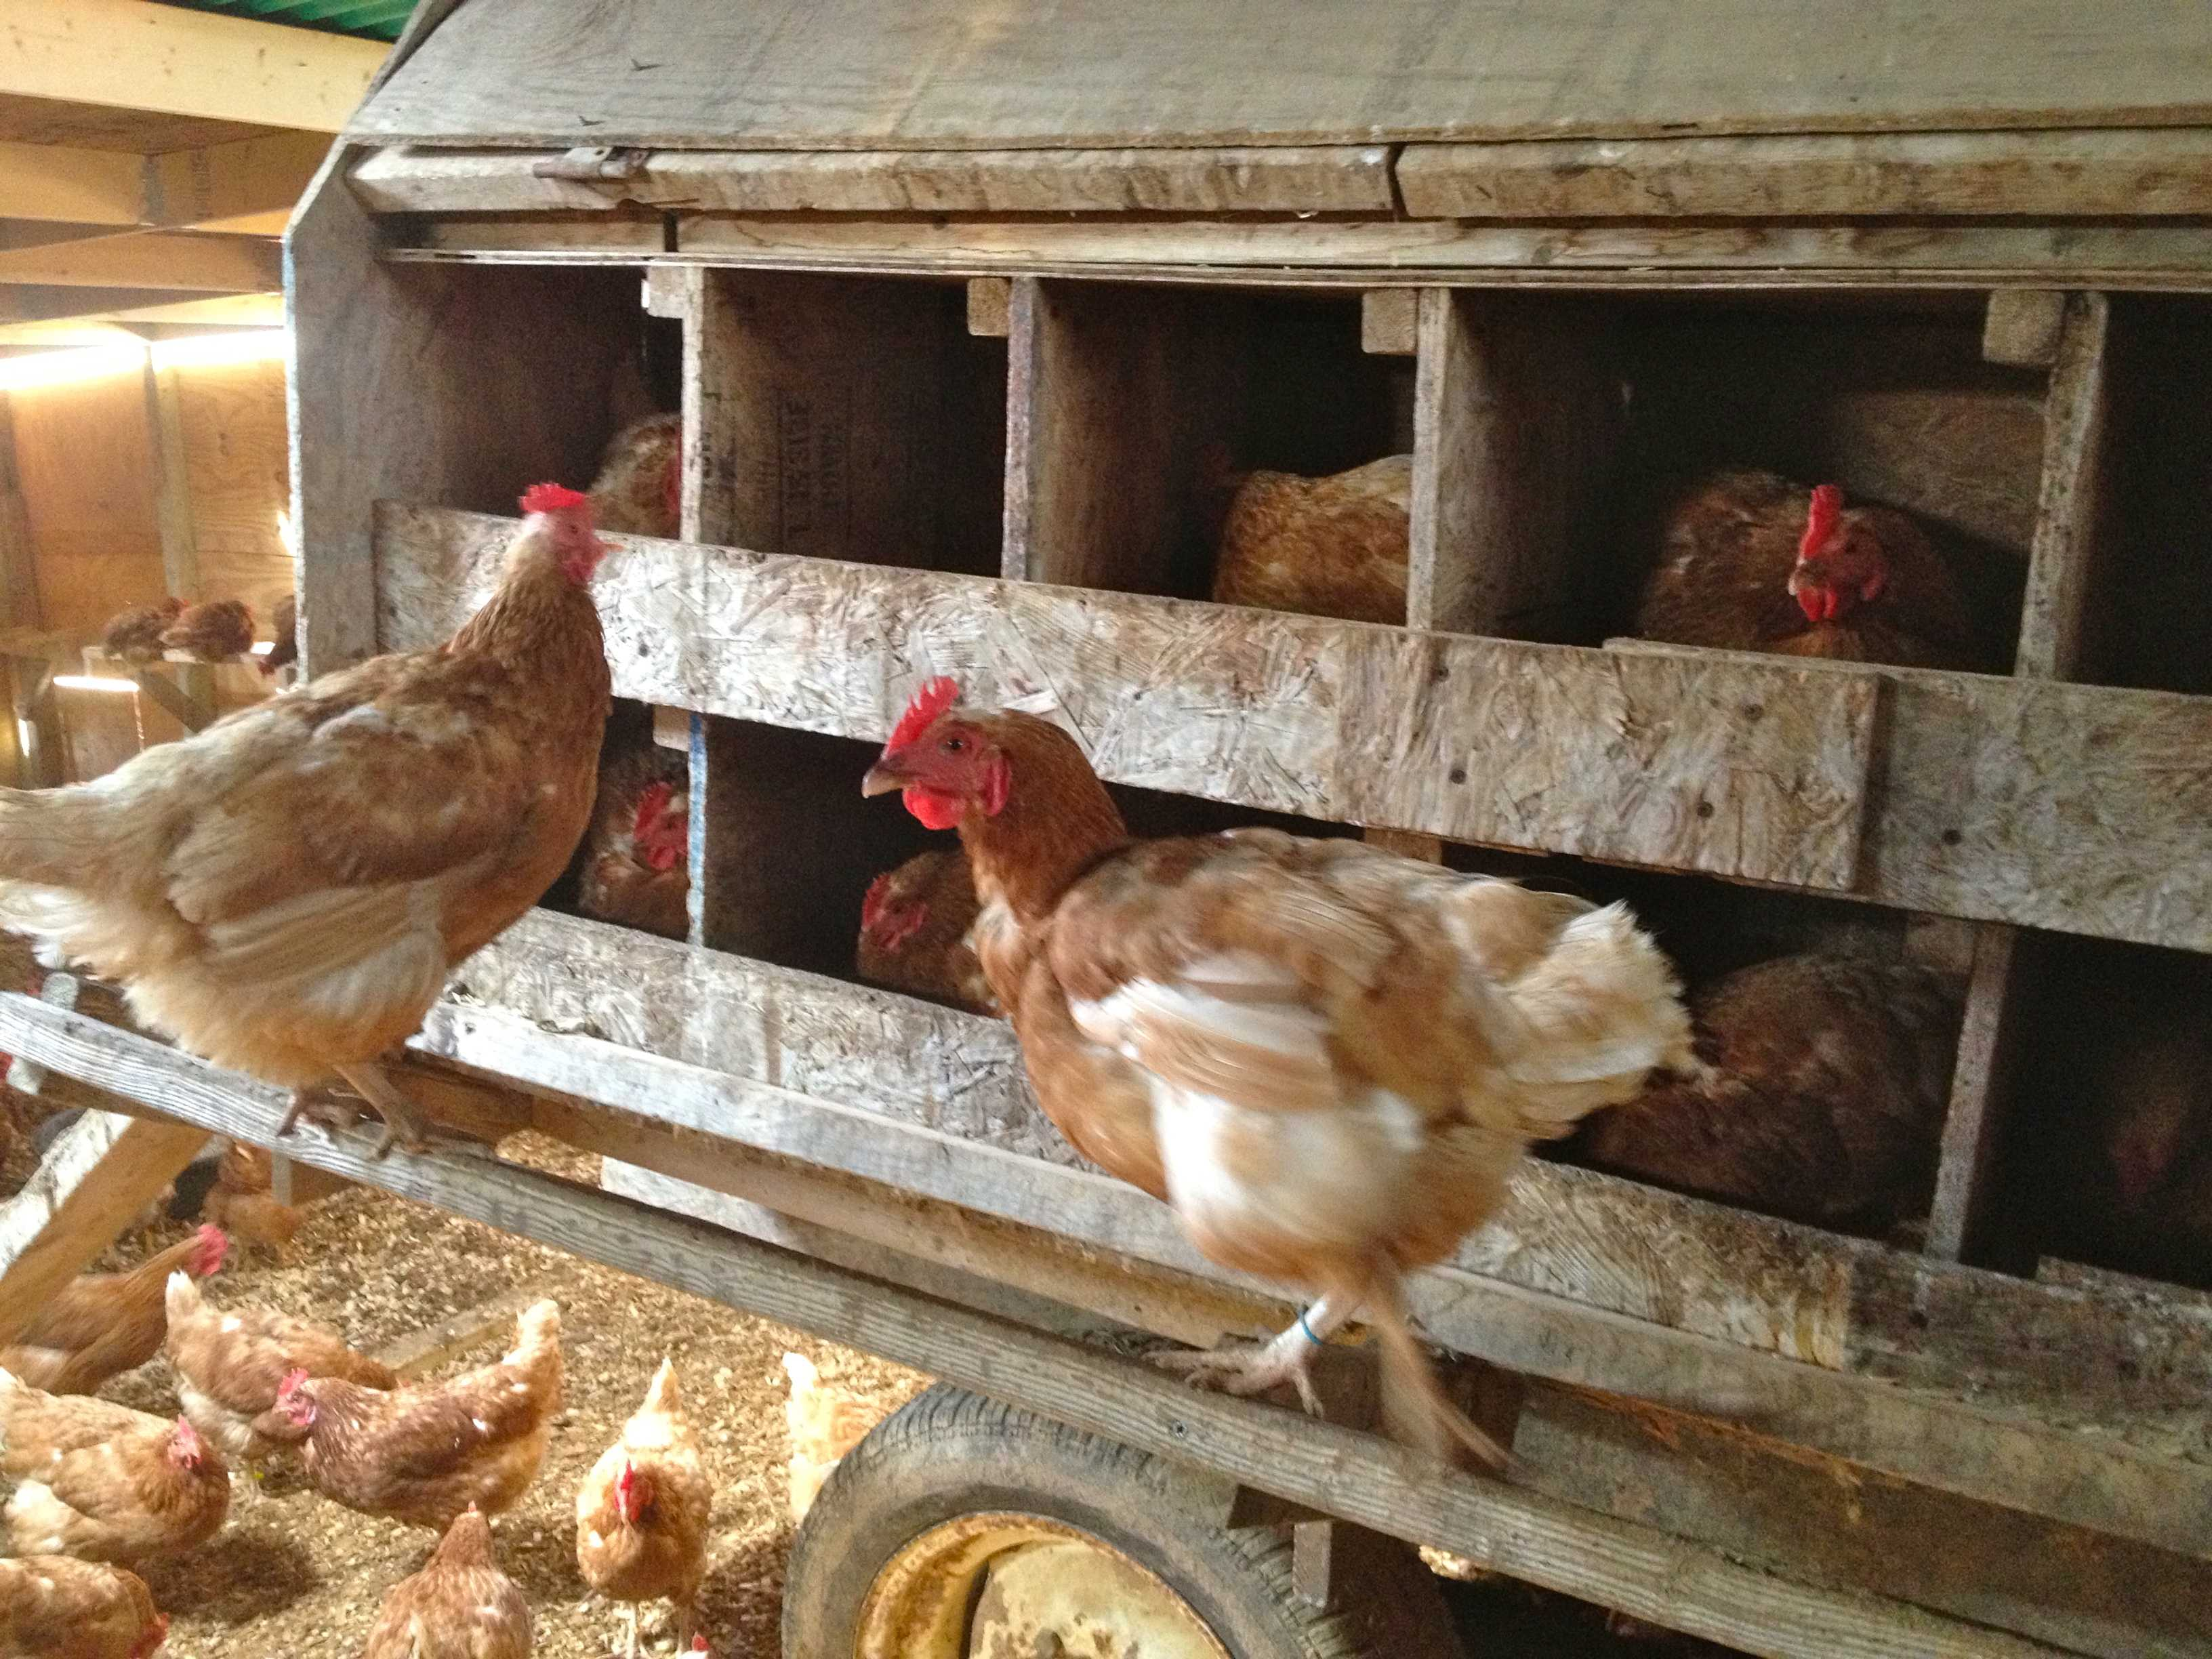 Why Don't Chickens Lay Eggs in the Winter? - Smith Meadows